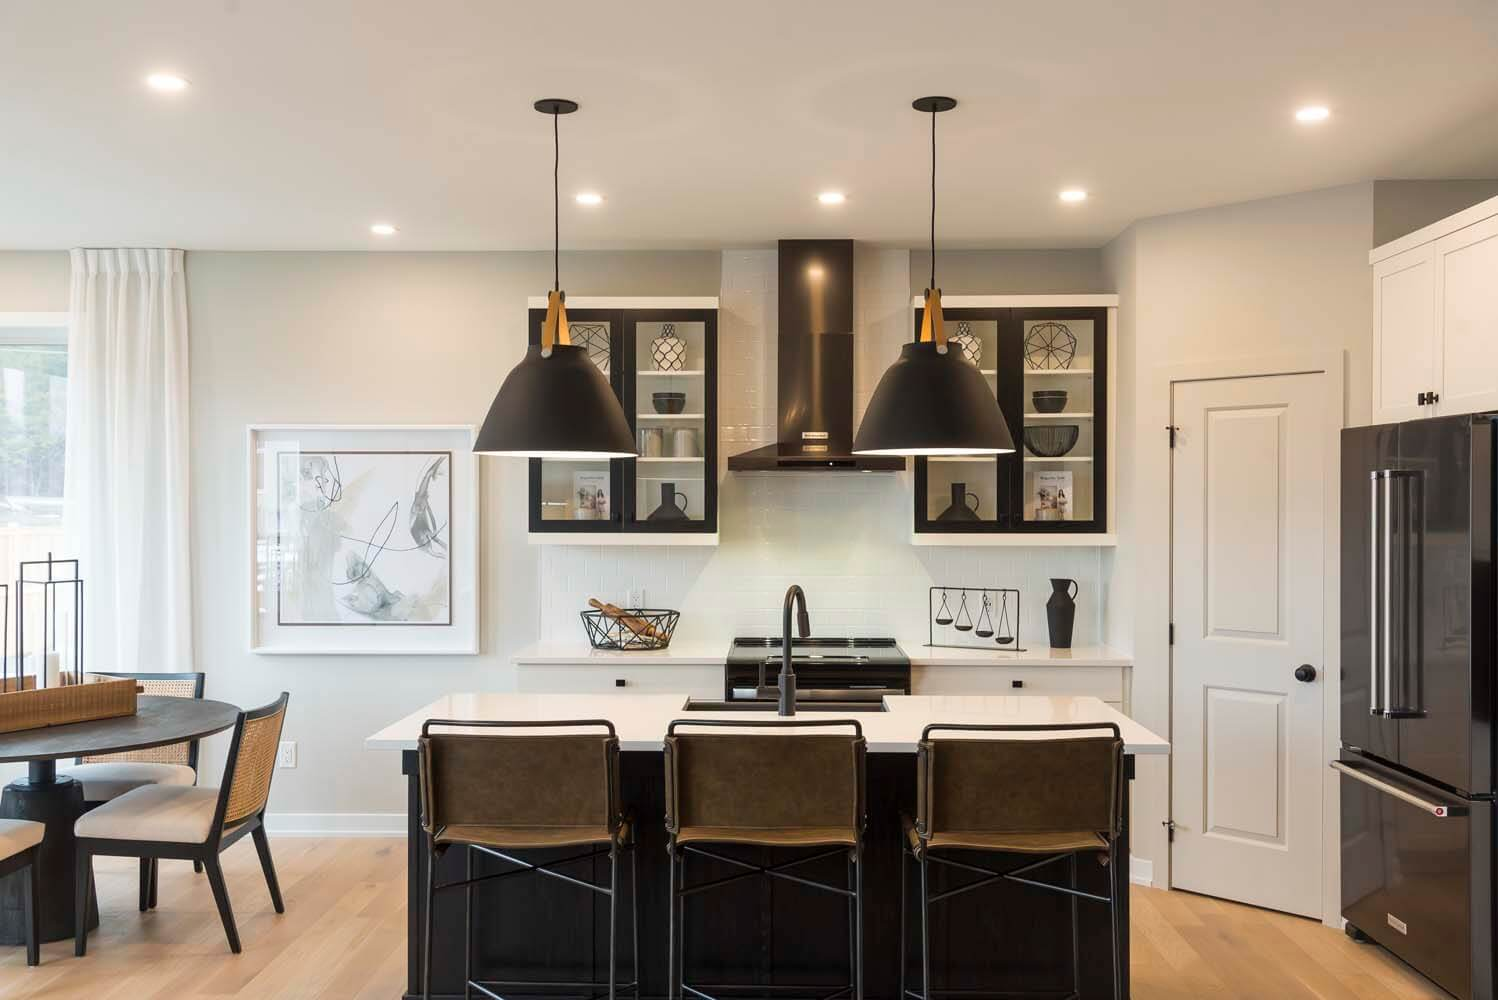 New Ottawa  Model Home Paloma in EdenWylde, located at 515 EdenWylde Drive, Stittsville Built By Cardel Homes Ottawa